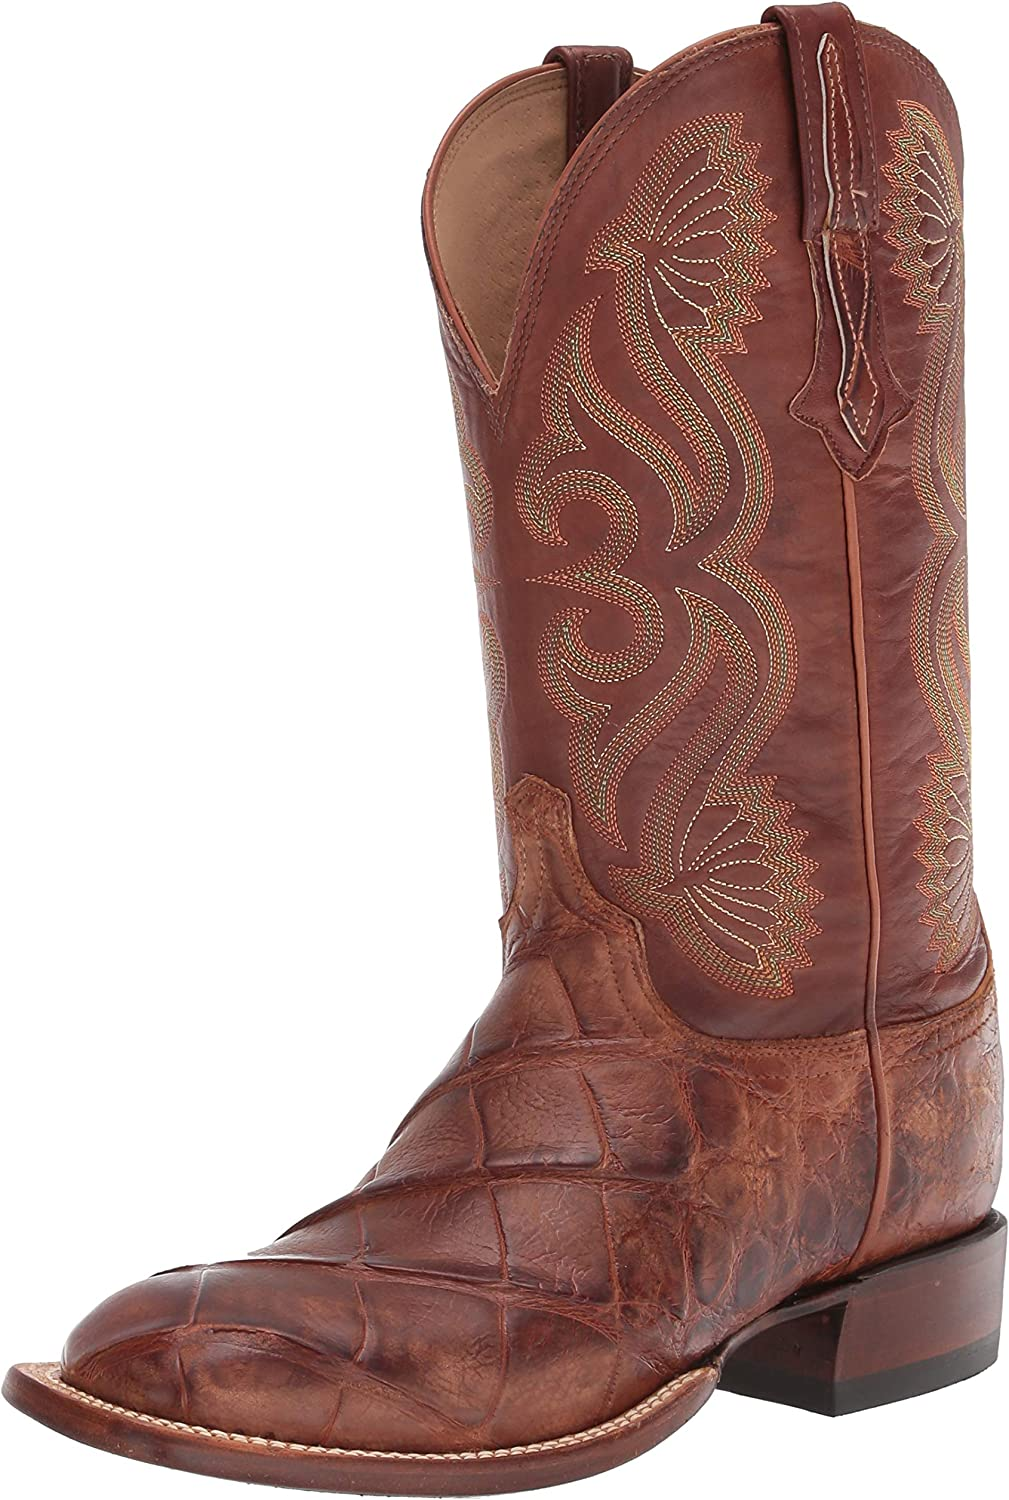 Lucchese mens Roy Alligator Boots Cowboy Square 5 ☆ very popular Branded goods Toe